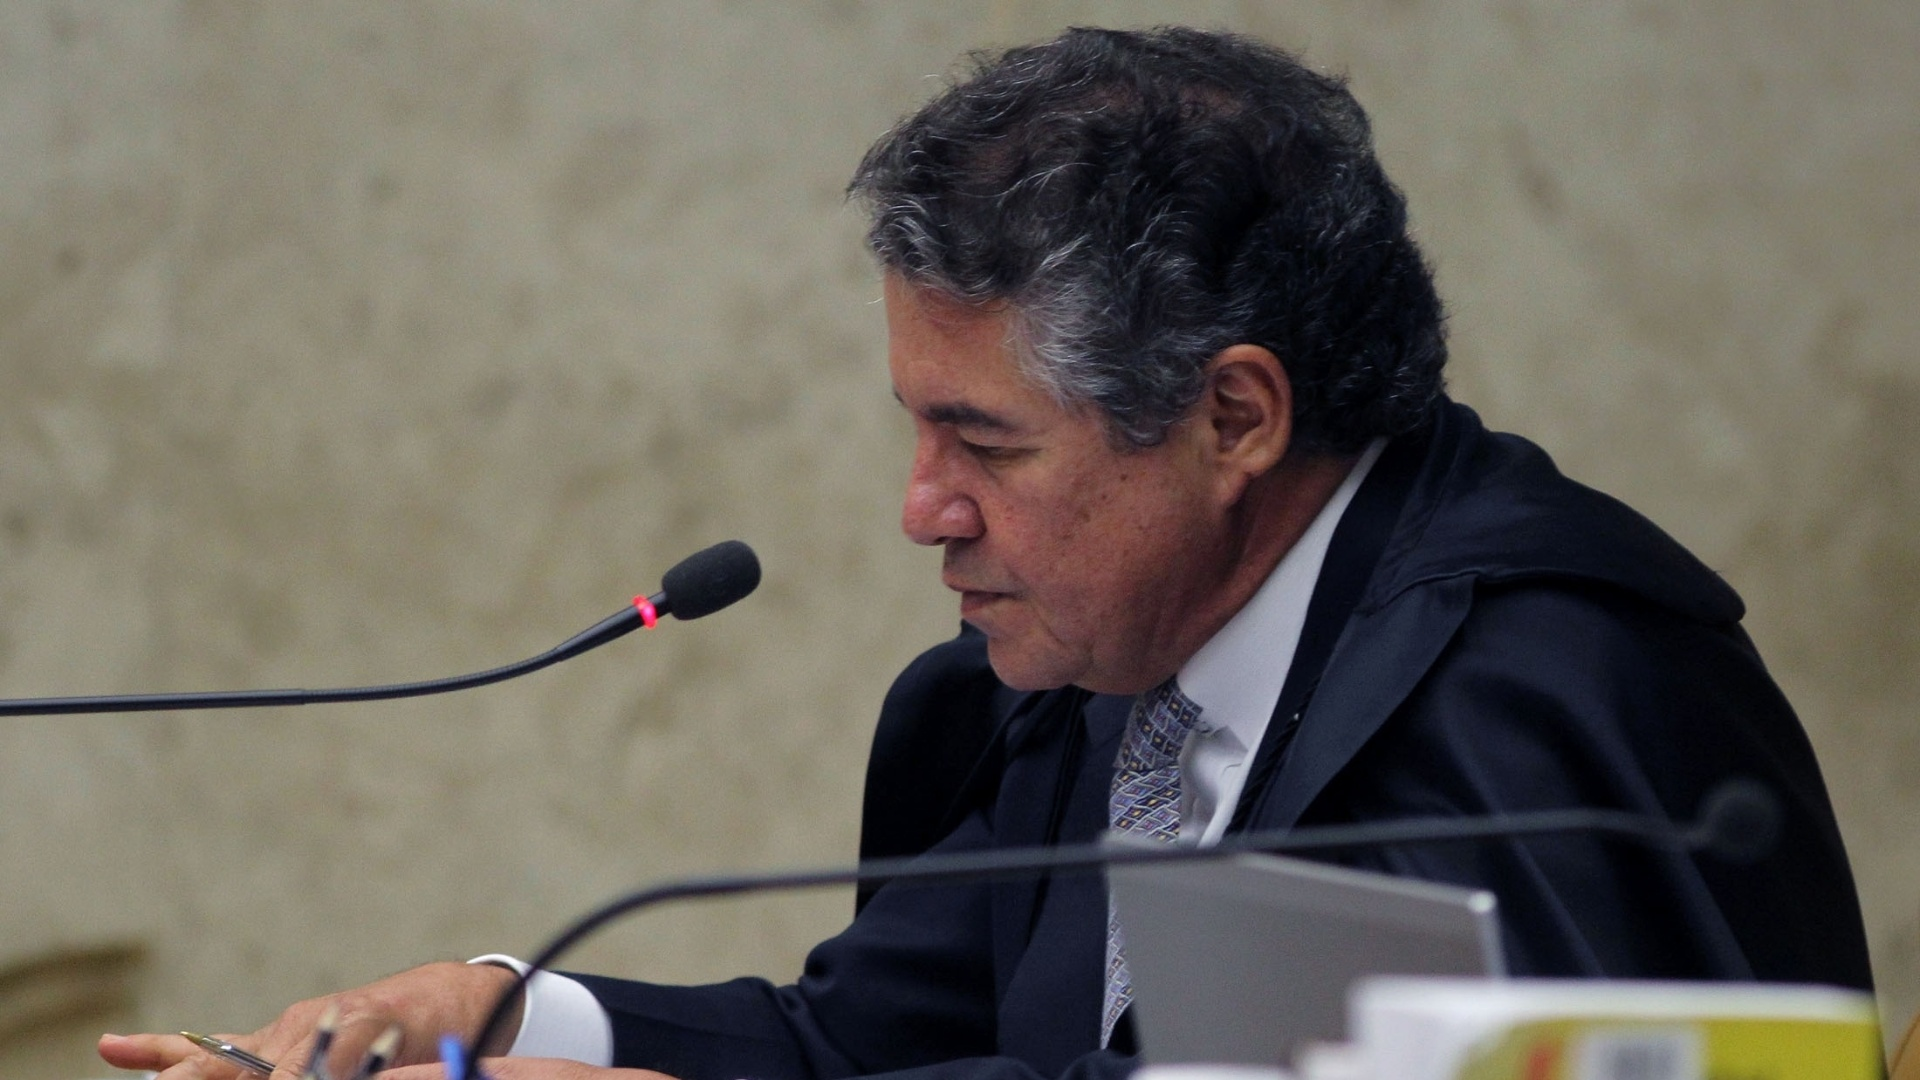 28.nov.2012 - O ministro Marco Aurlio acompanha sesso de julgamento do mensalo no STF (Supremo Tribunal Federal). Nesta quarta-feira, os ministros do STF fixaram a pena do ex-deputado federal Roberto Jefferson (PTB-RJ), delator do esquema, em 7 anos e 14 dias de priso, por corrupo passiva e lavagem de dinheiro